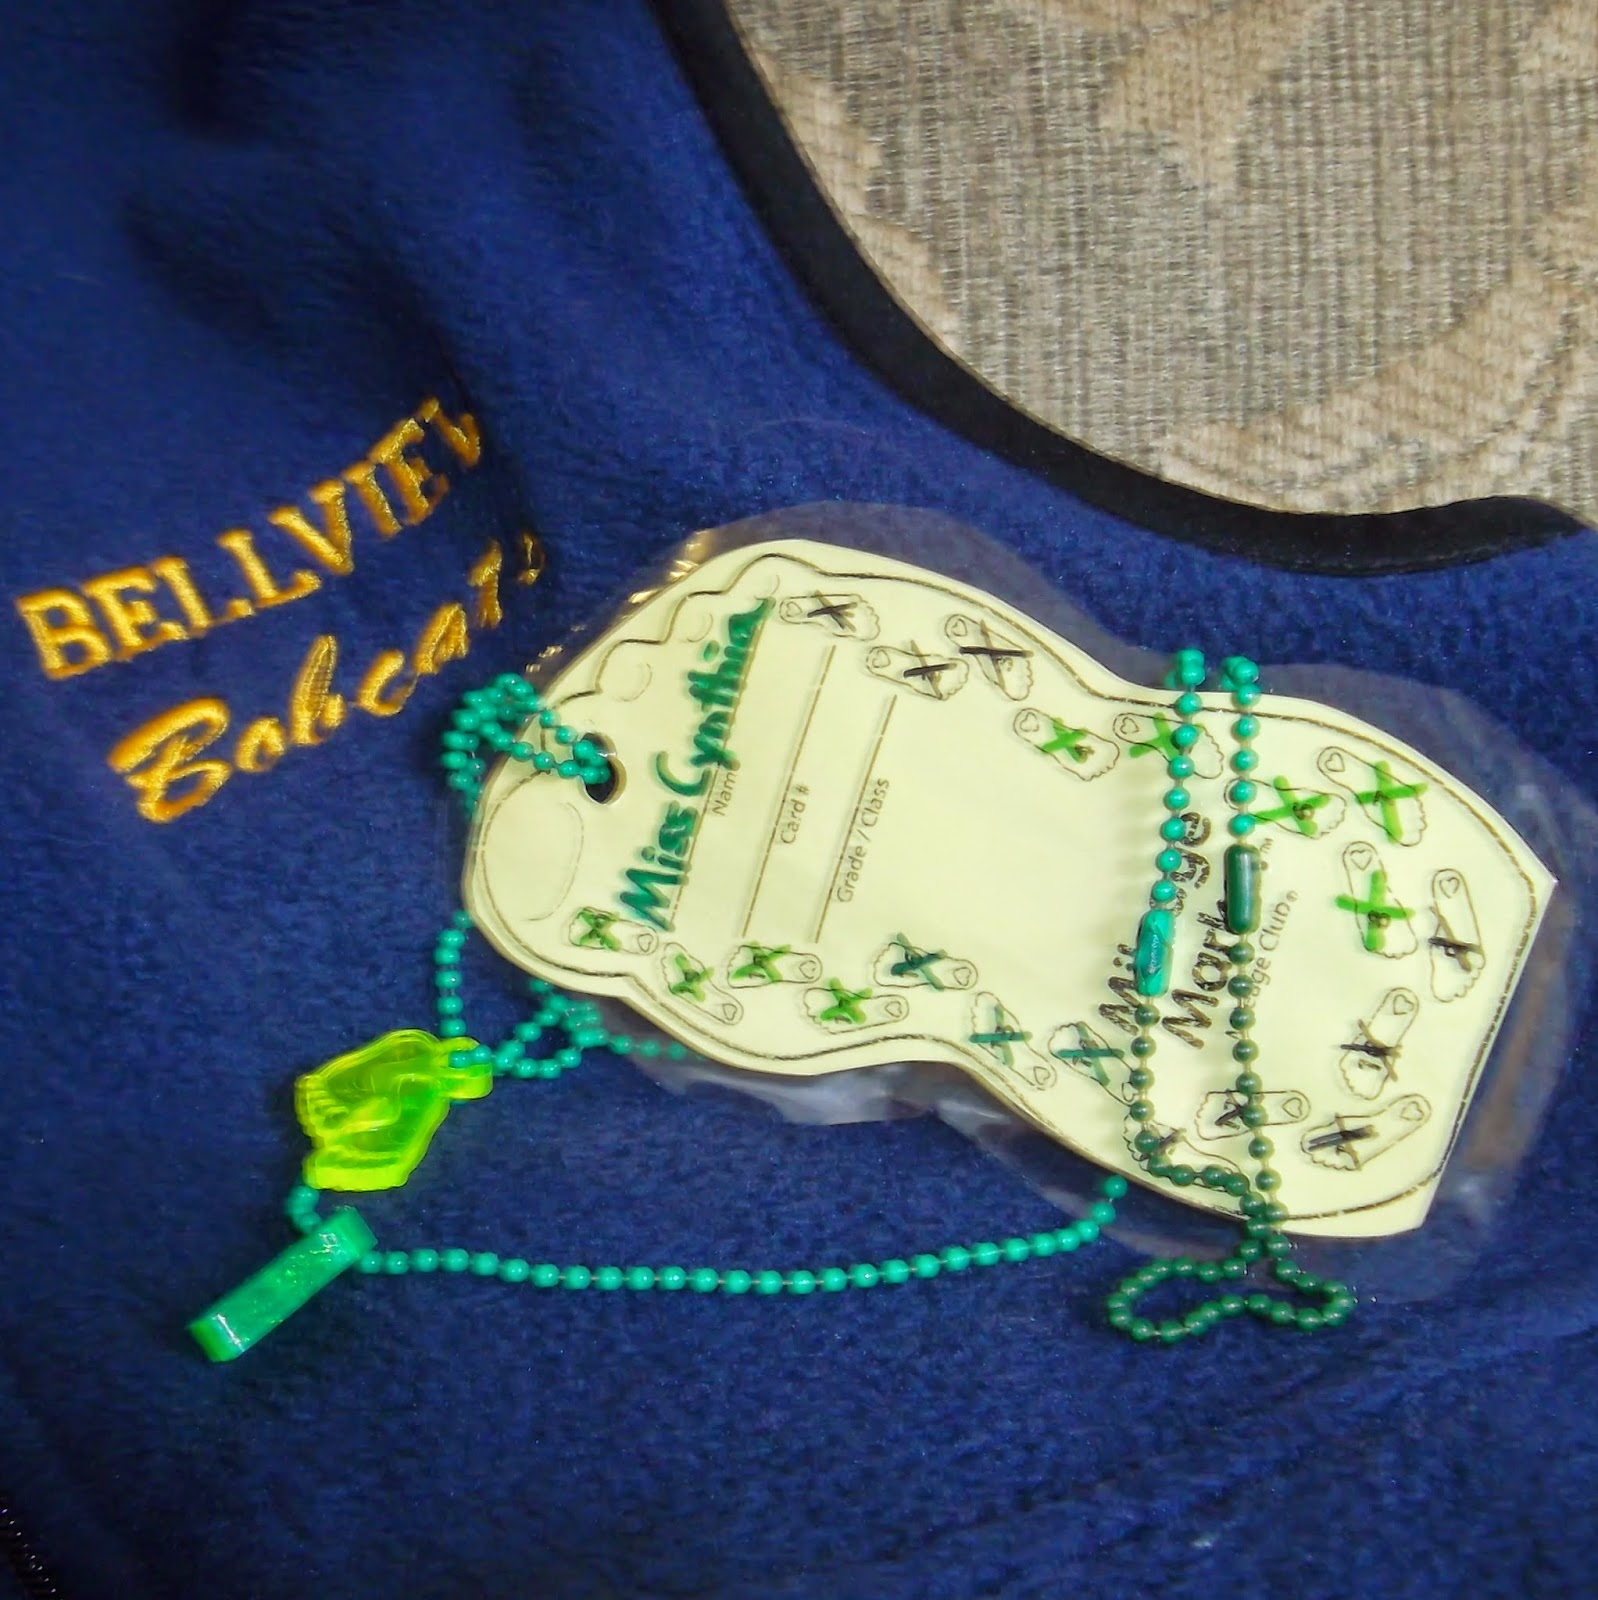 A foot-shaped, laminated card, with Miss Cynthia hand-written on it and X-marks through each of 20 smaller feet that are printed on the card. The laminated card is strung from a green beaded chain with two plastic foot medalions. They lie on a portion of my blue-fleece Bellview Bobcats vest.